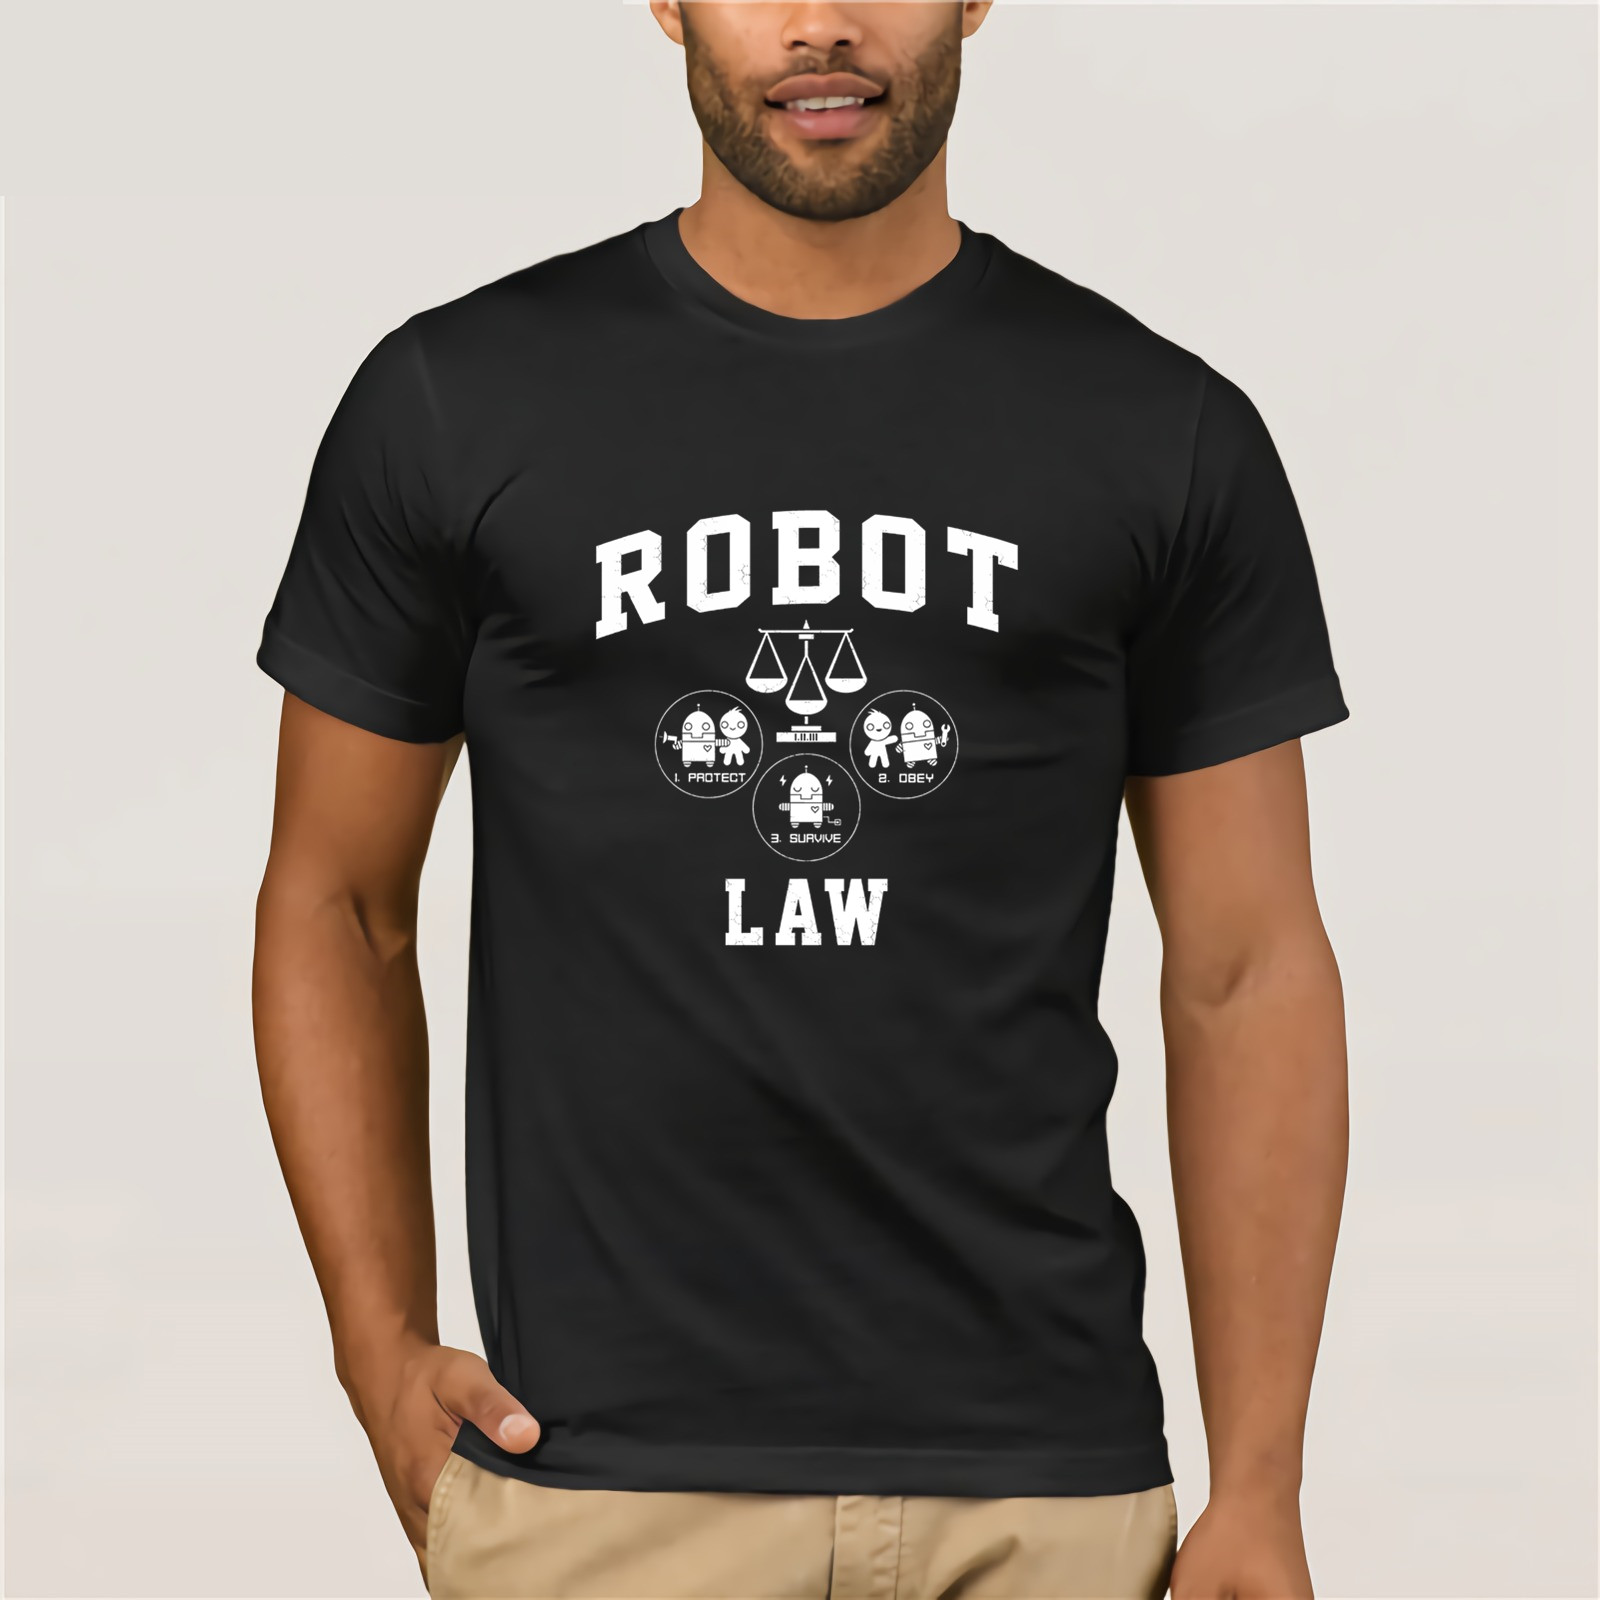 Robot Law School - tee 2019 Fashion Casual Streetwear Summer cool T-shirt Top T-shirt Men's Short Sleeve image